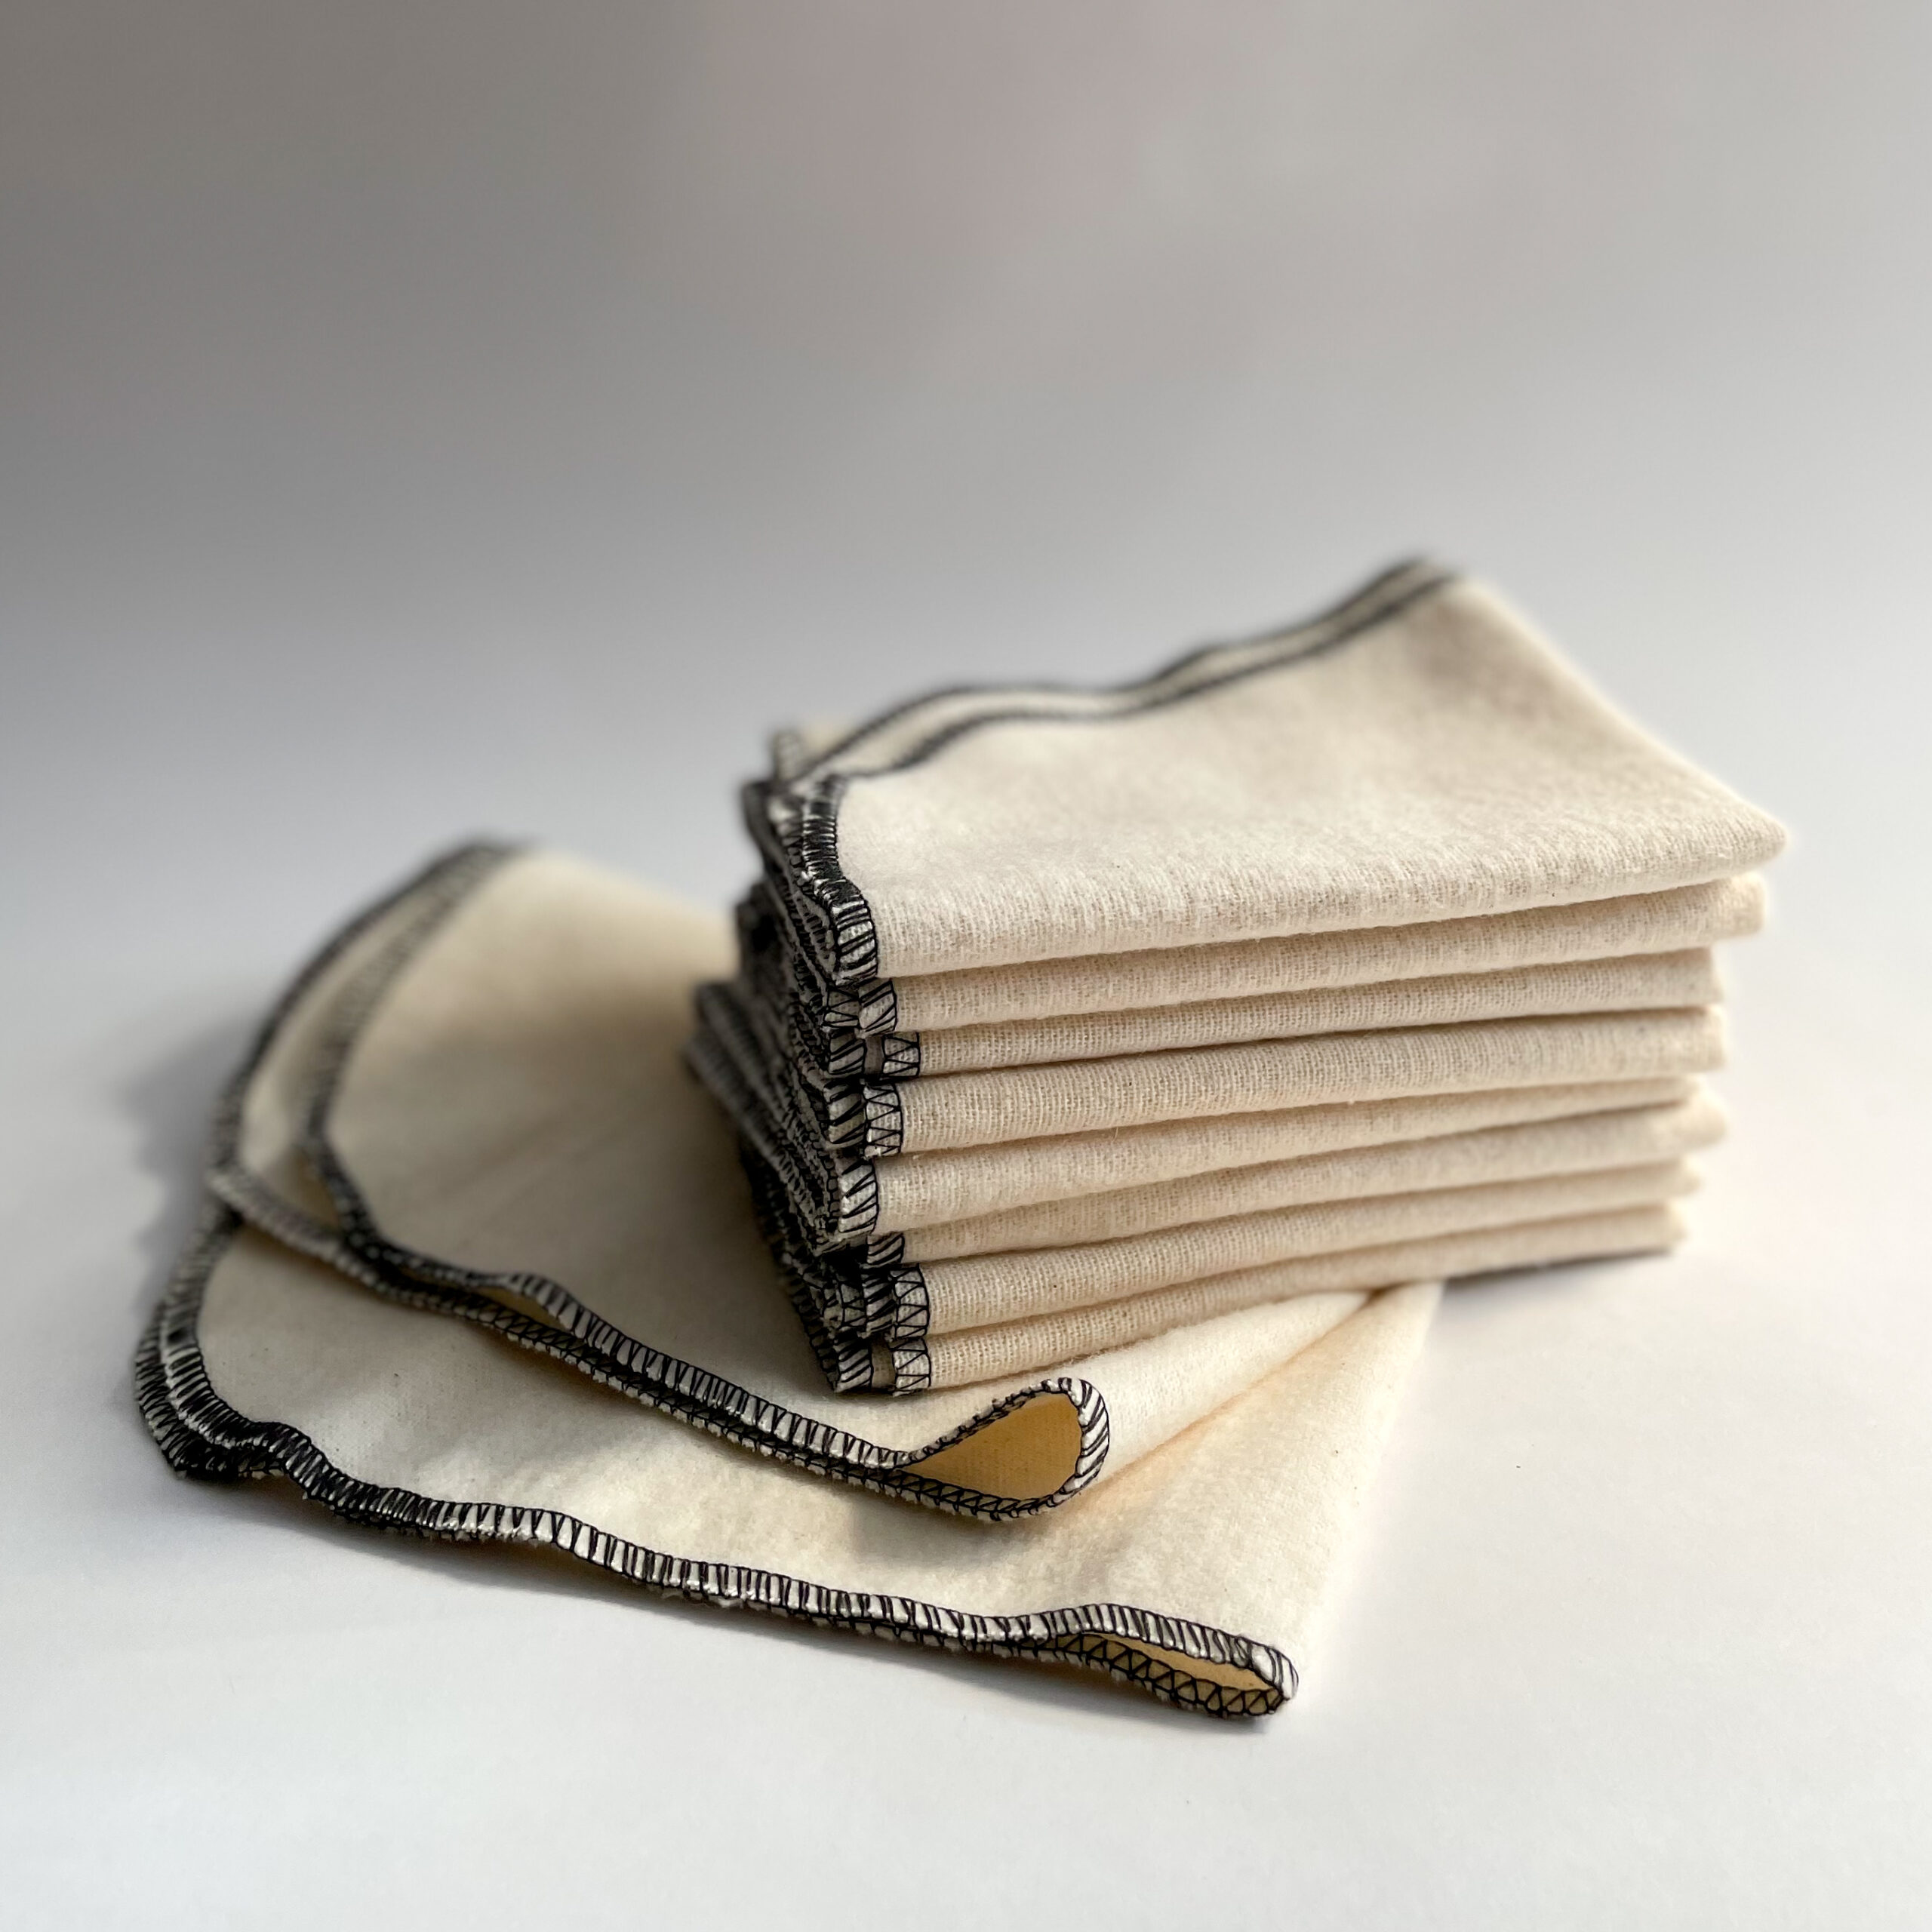 A stack of Famaco Shine Cloths